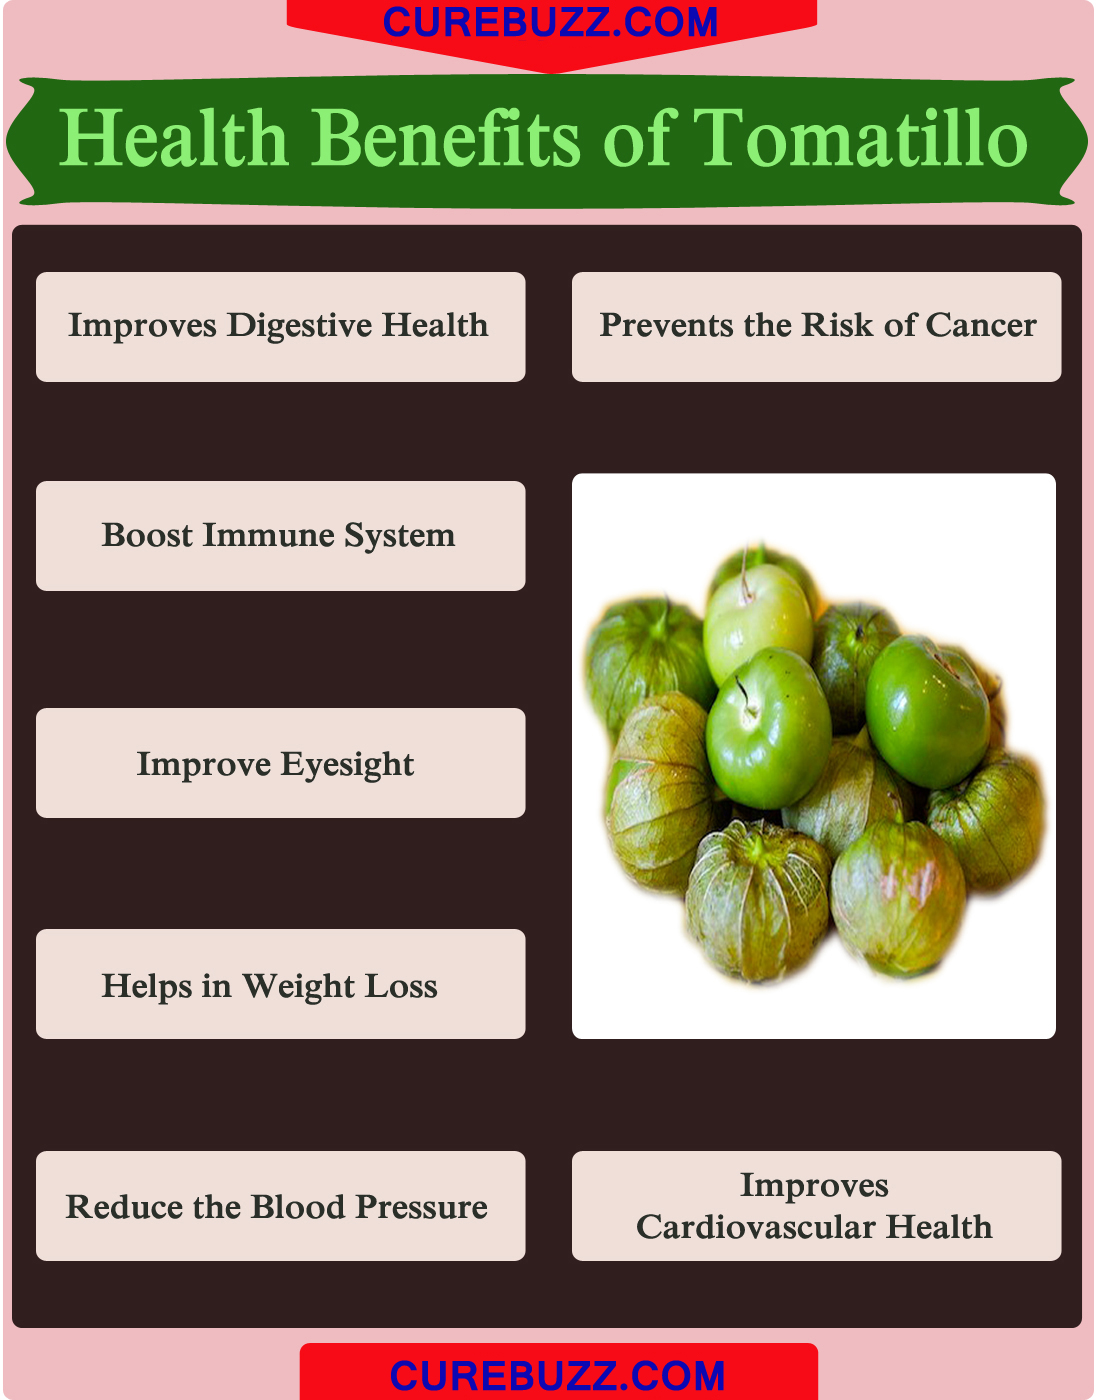 Health Benefits of Tomatillo